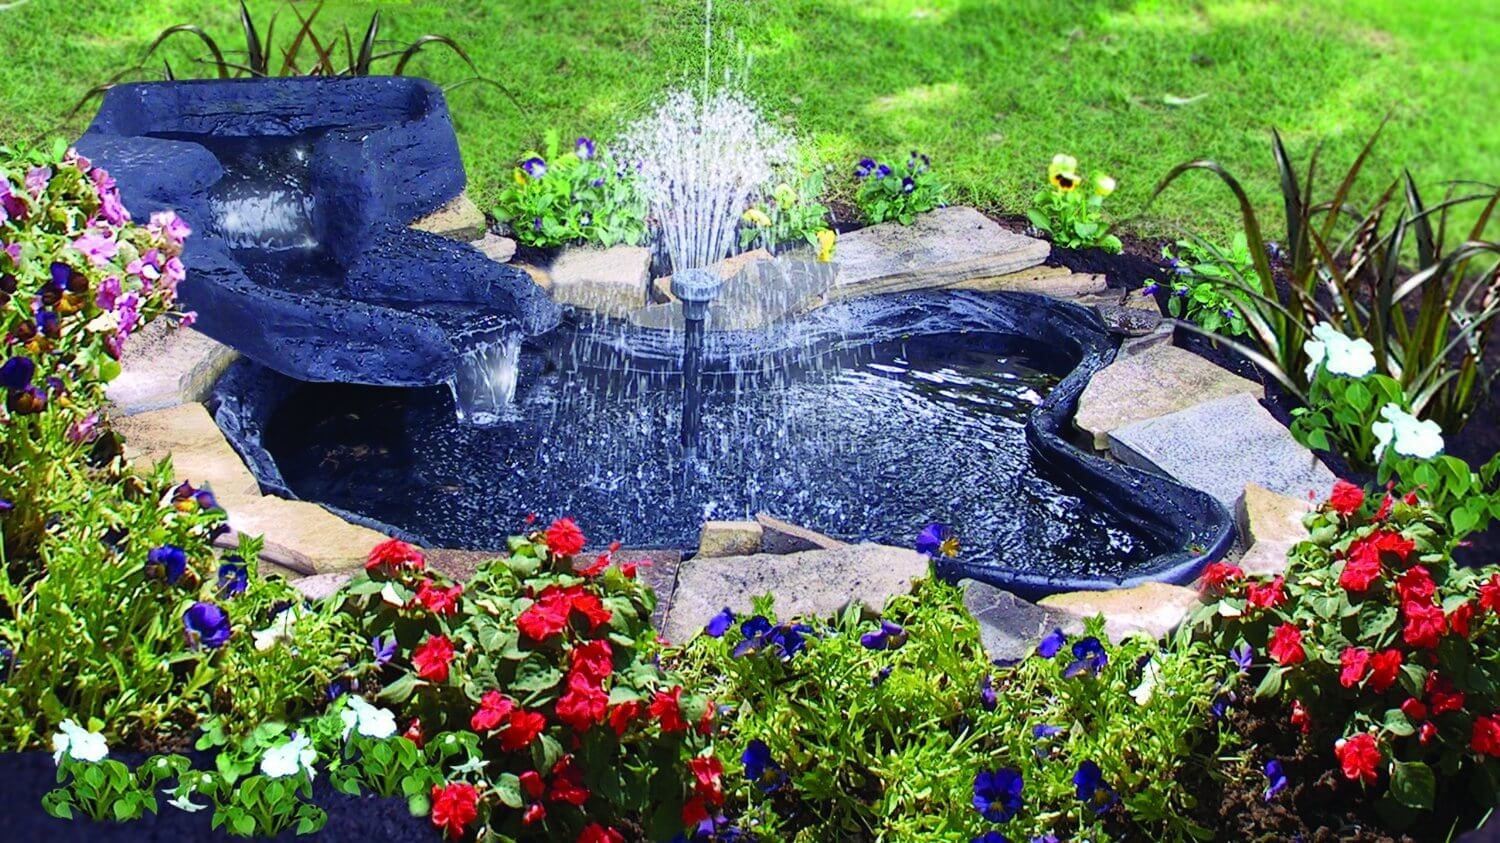 A simple bright blue garden pond with a tall center fountain. Small enough to fit nicely in a small section of a larger garden, and as a feature piece in smaller gardens.